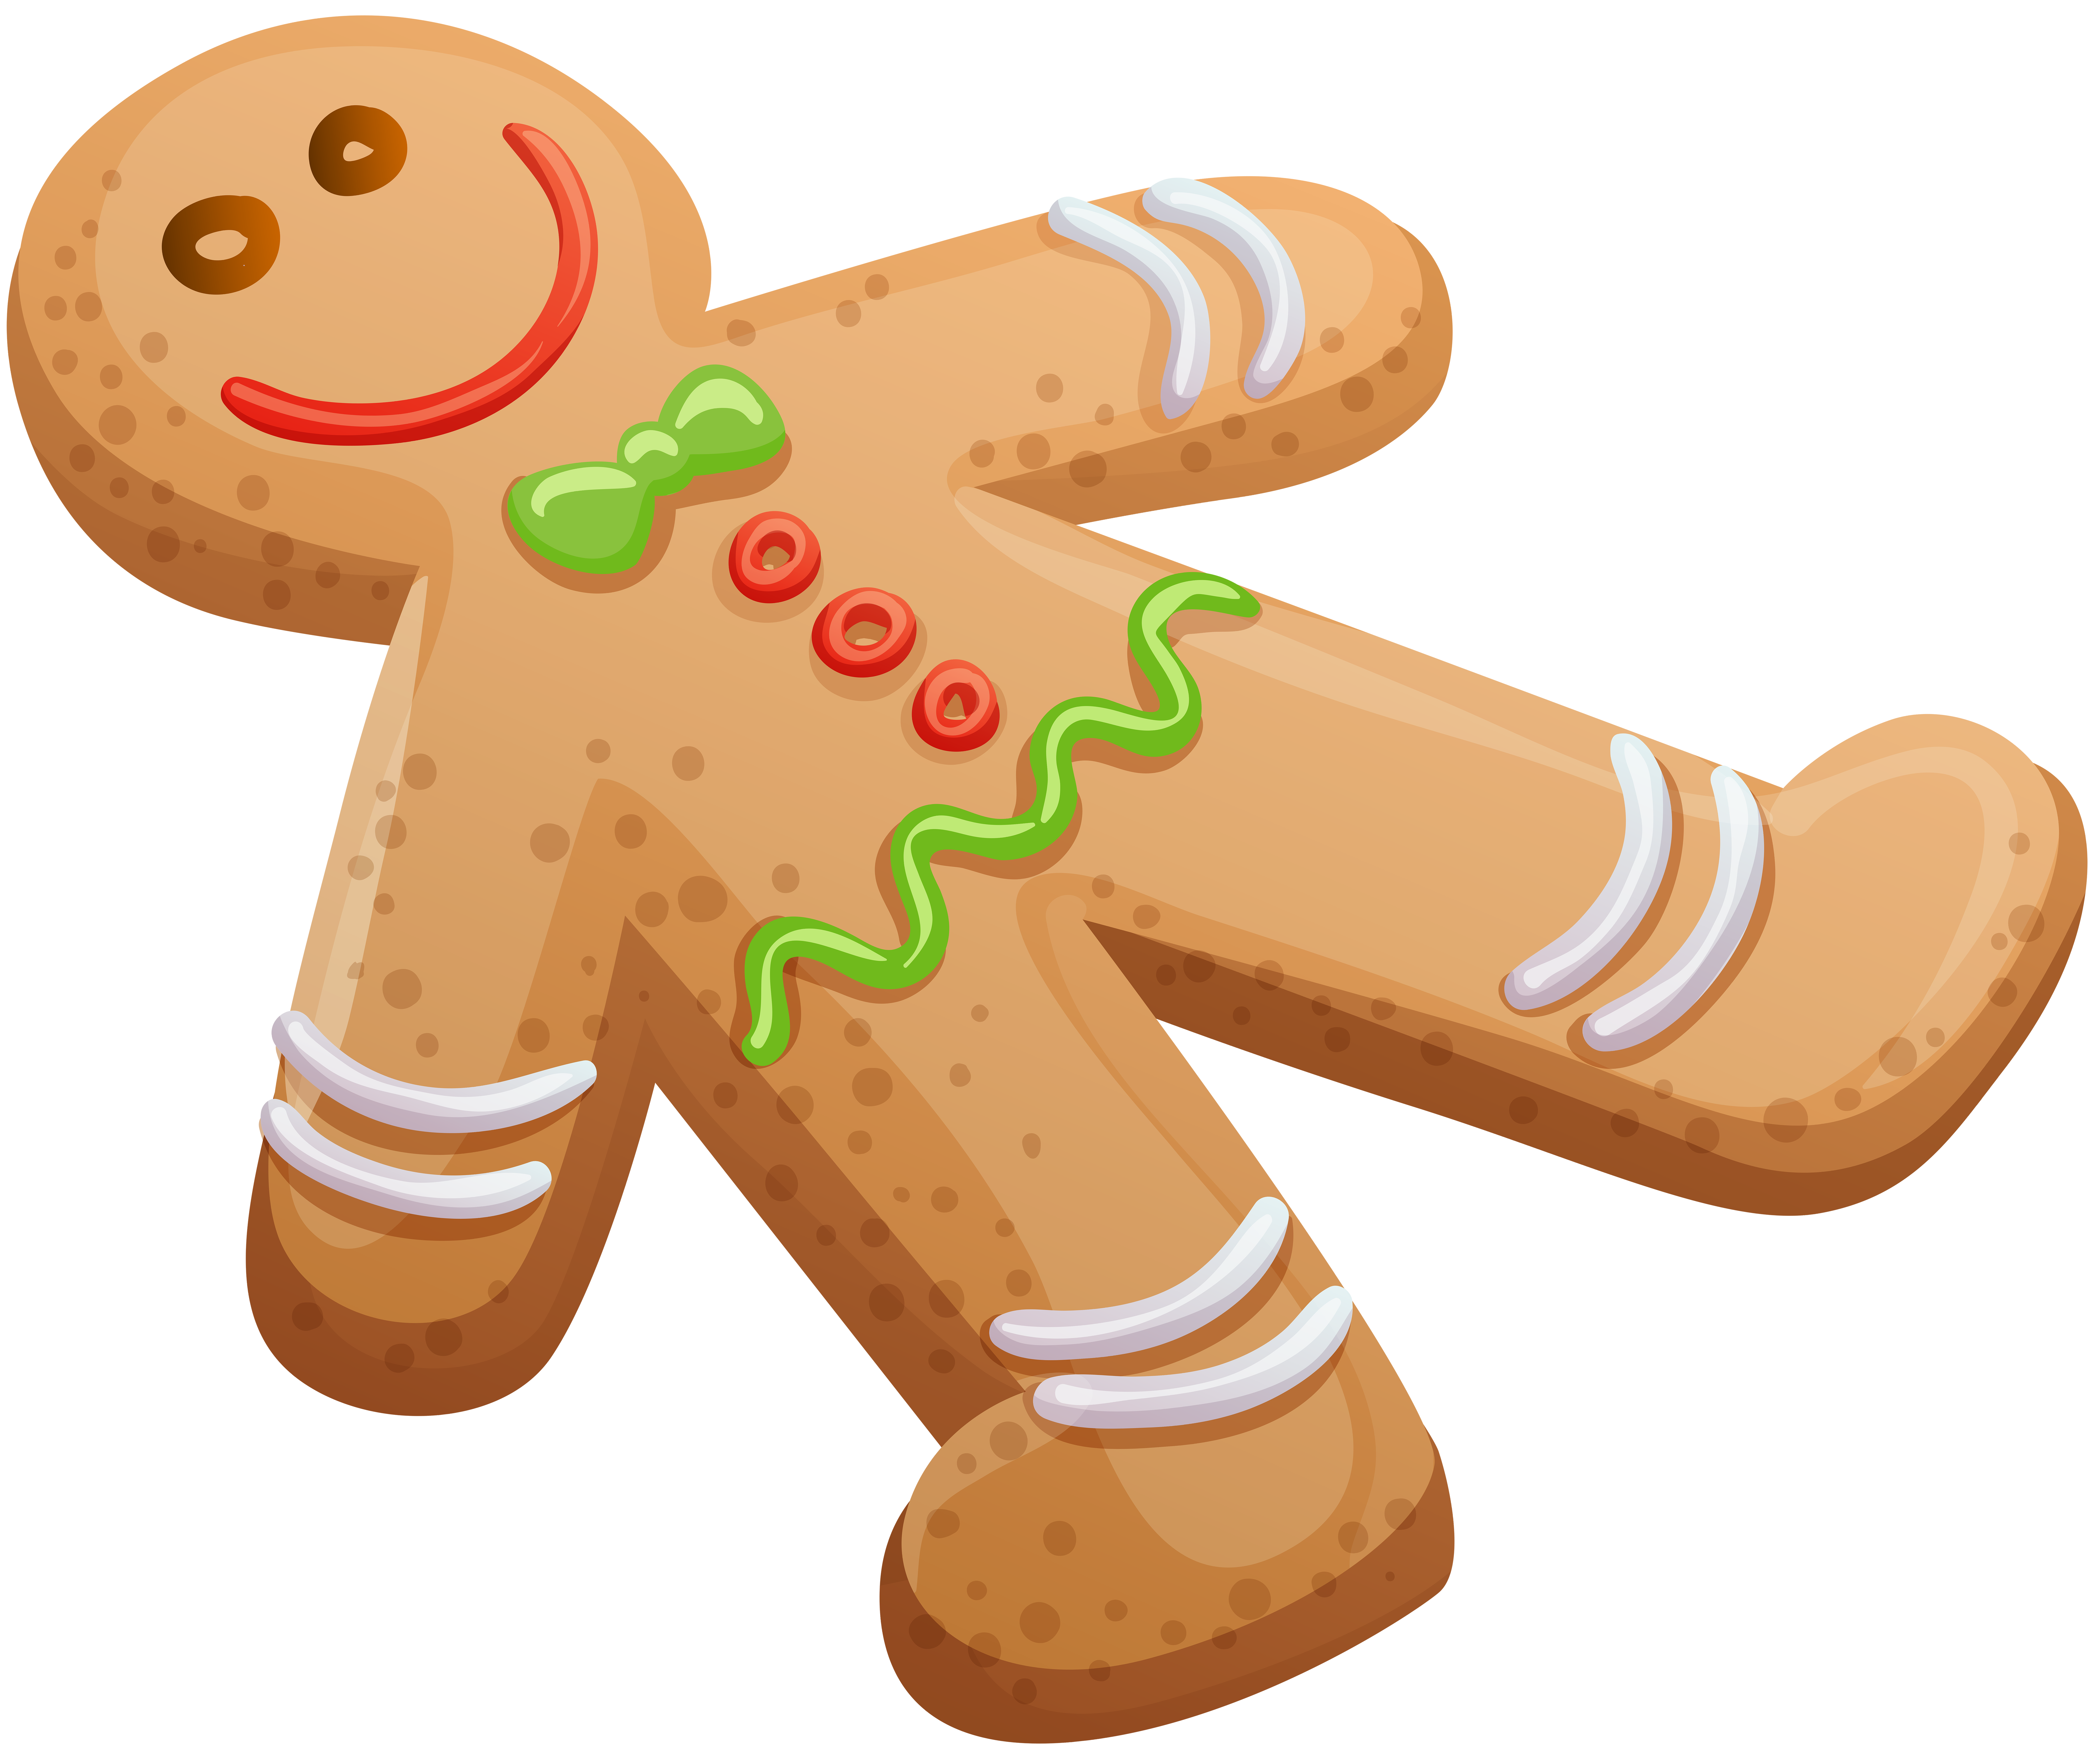 Gingerbread man cookie png. Desserts clipart snack